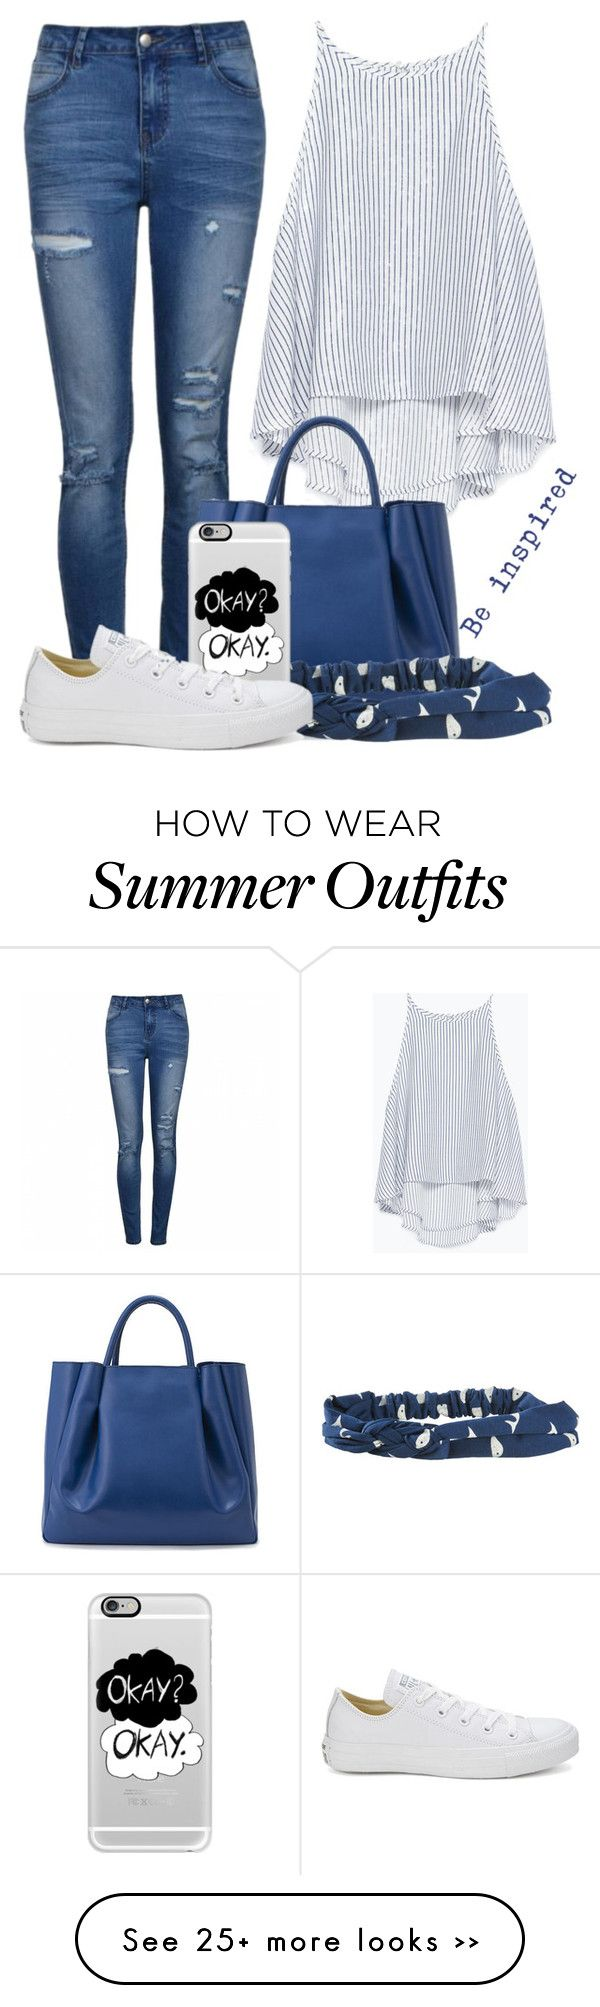 """""""Casual Blue and White Summer Outfit"""" by cloudybooks on Polyvore"""